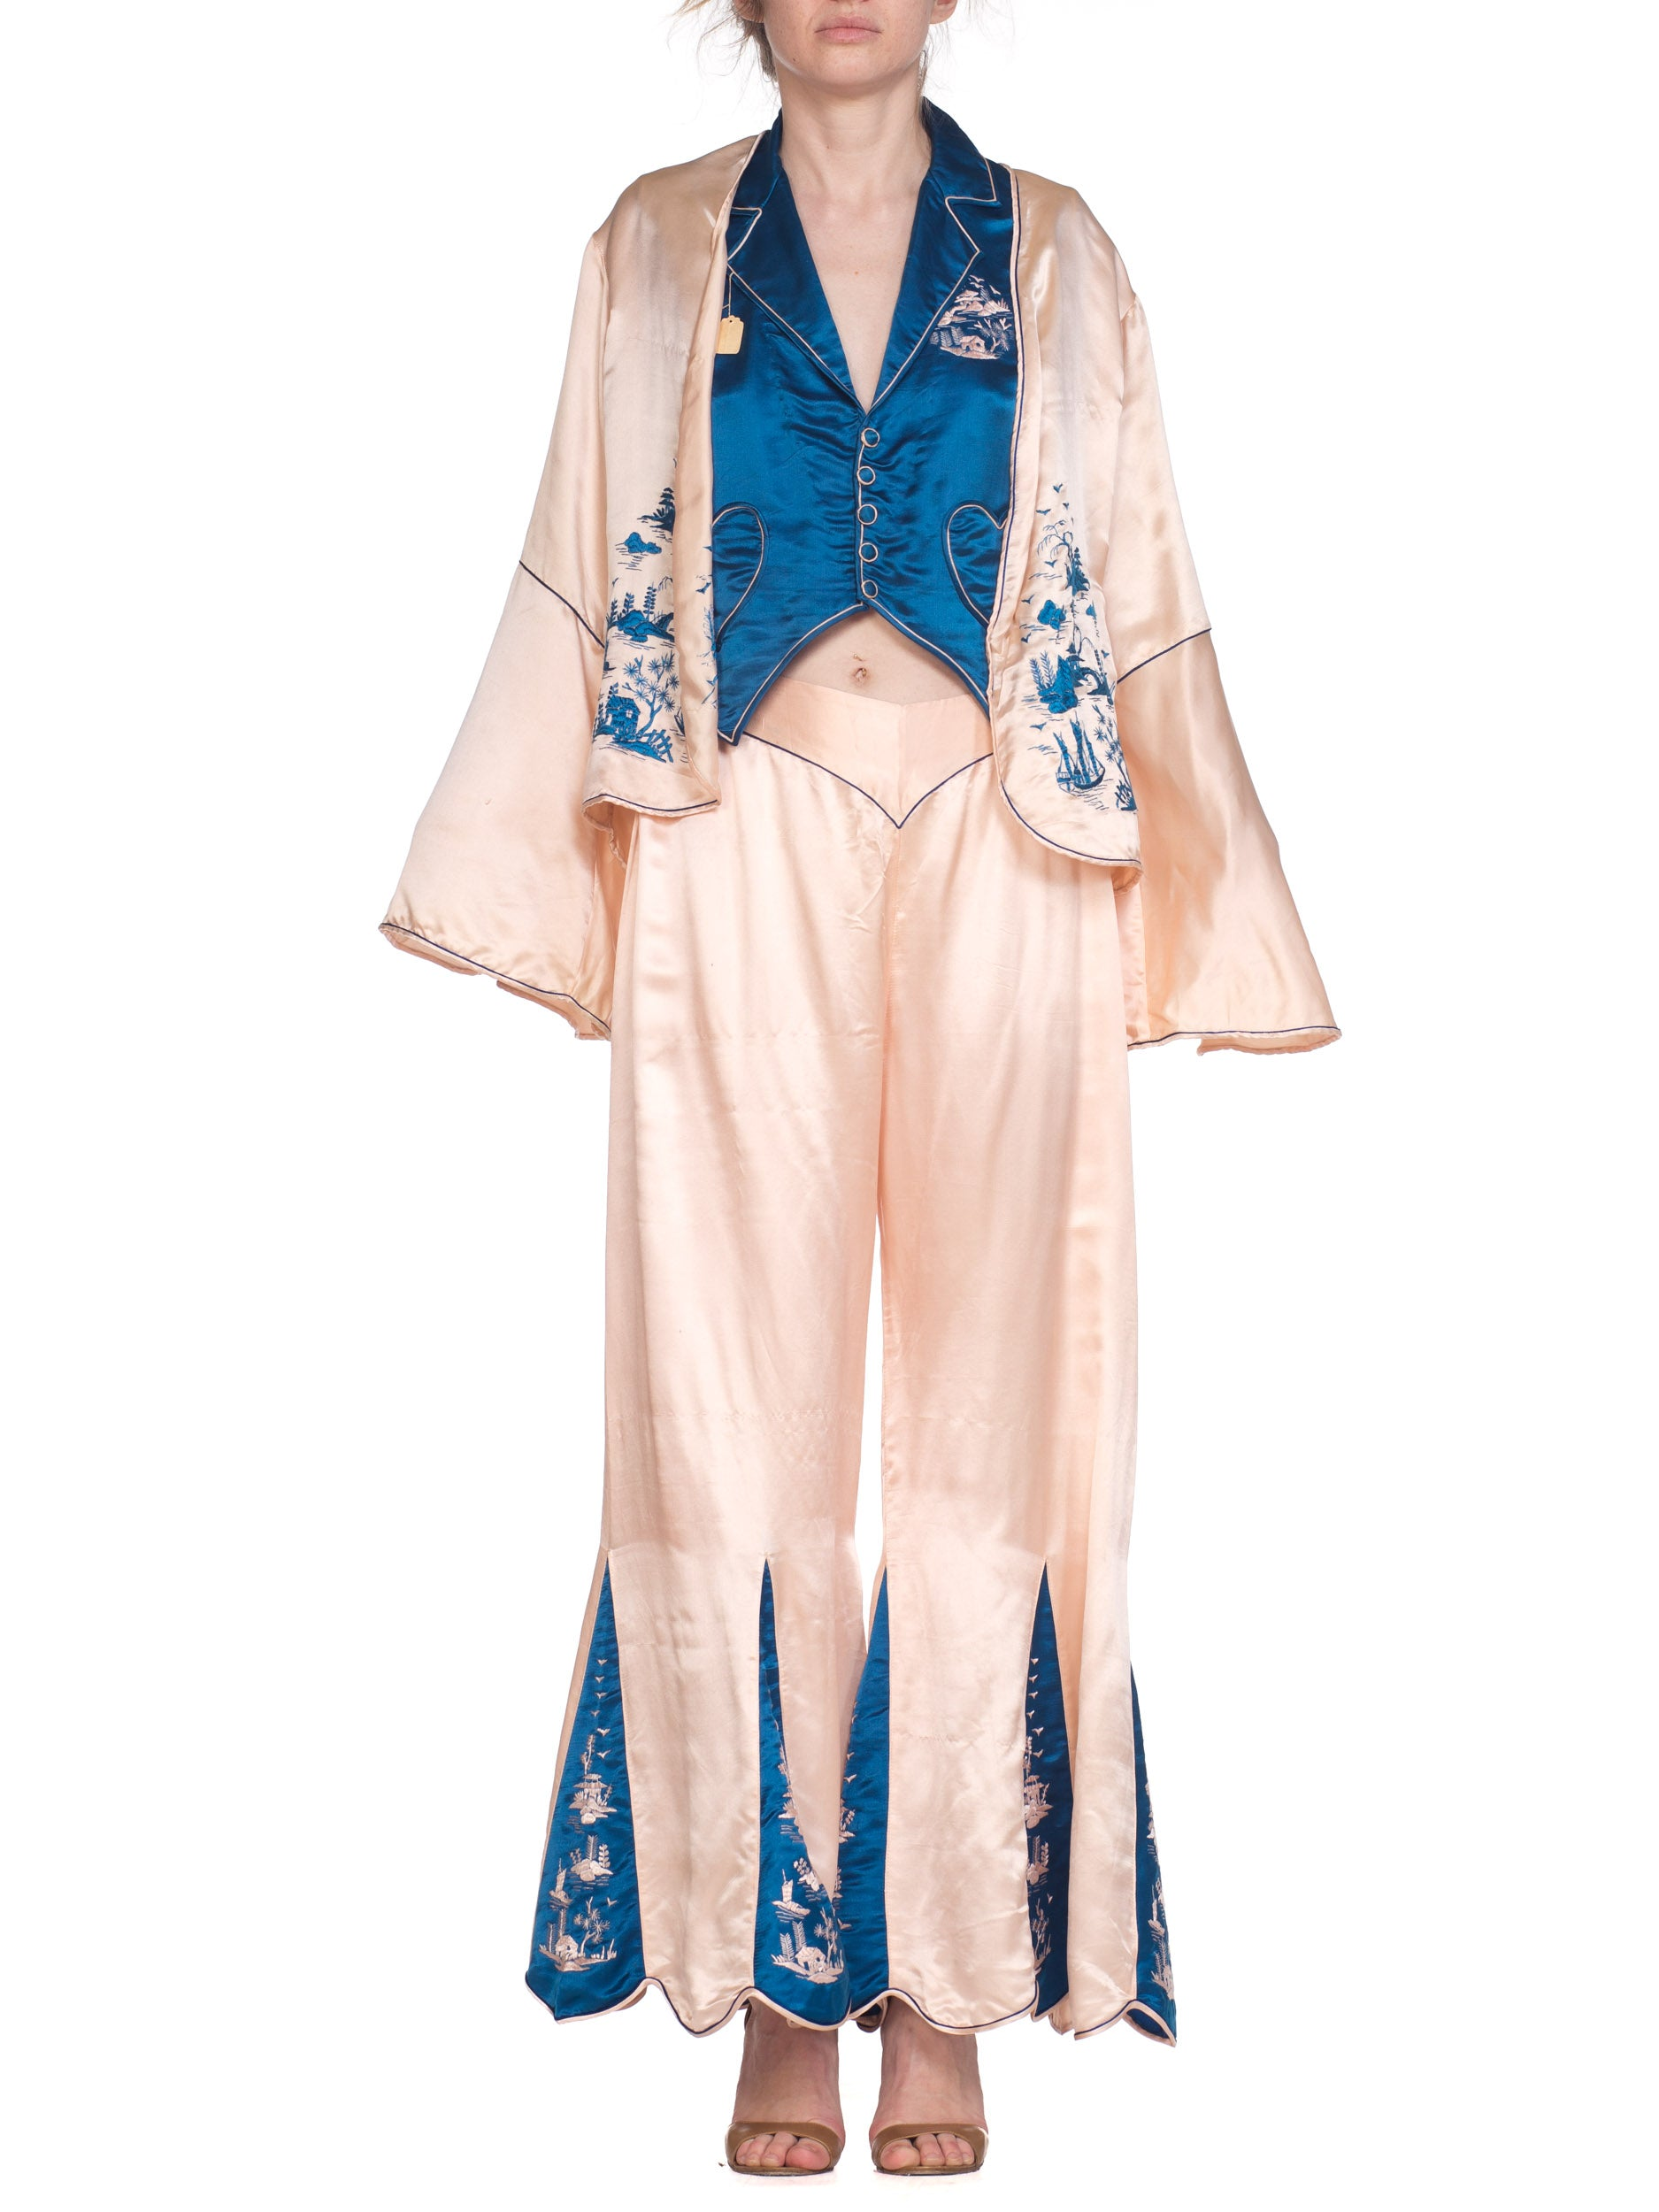 1920s 3 Piece Blue and Pink Asian Beach Pajamas With Embroidery Detail